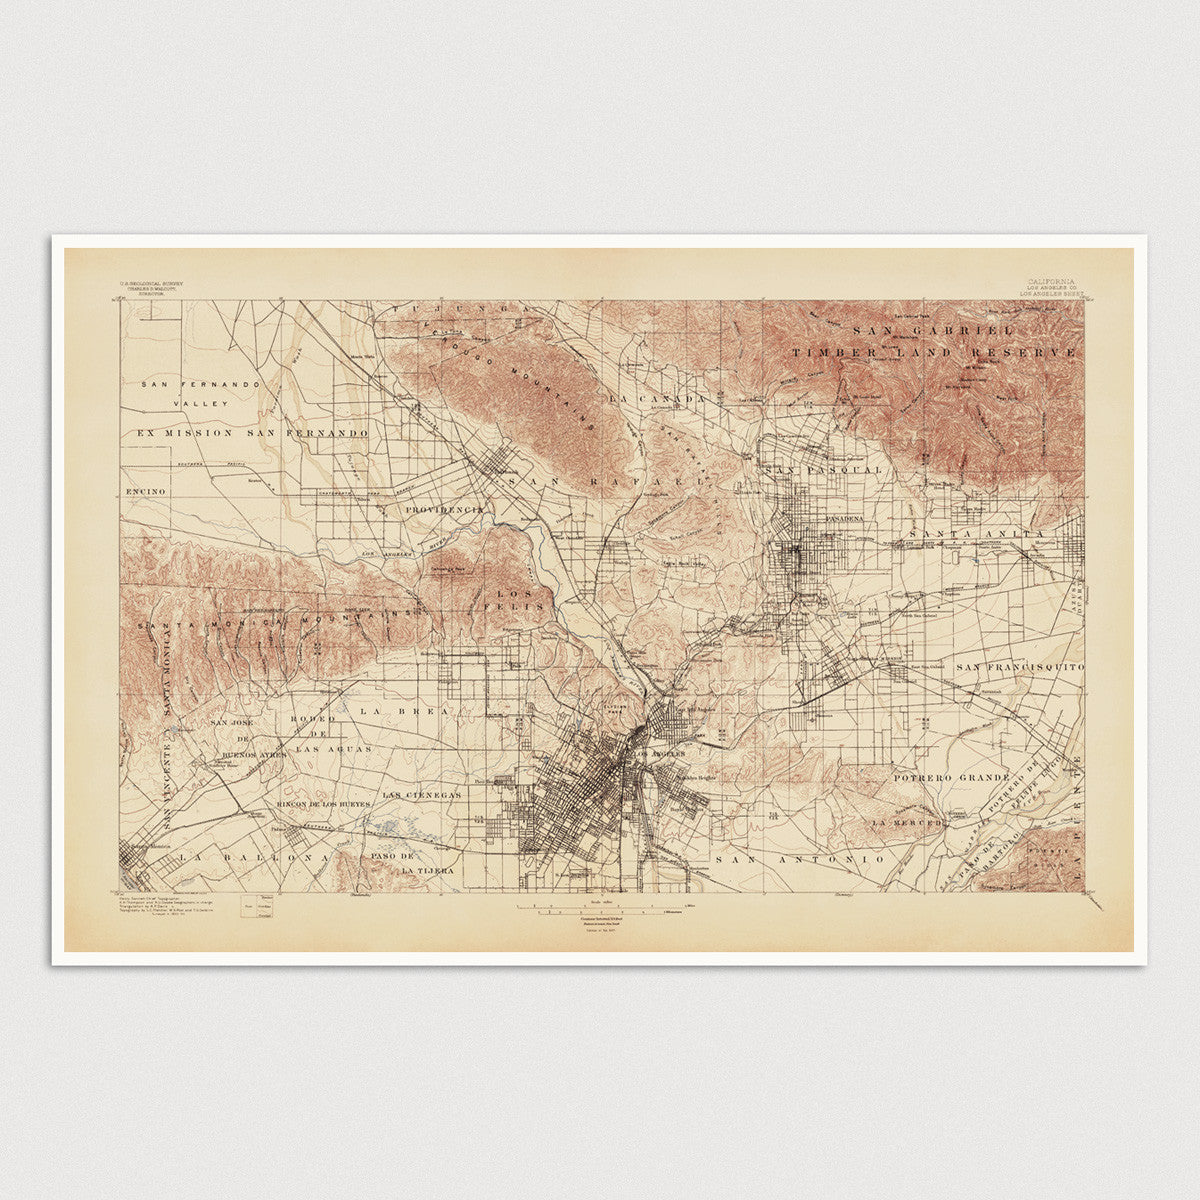 Usgs Topographic Map Of Los Angeles 1897 Blue Monocle